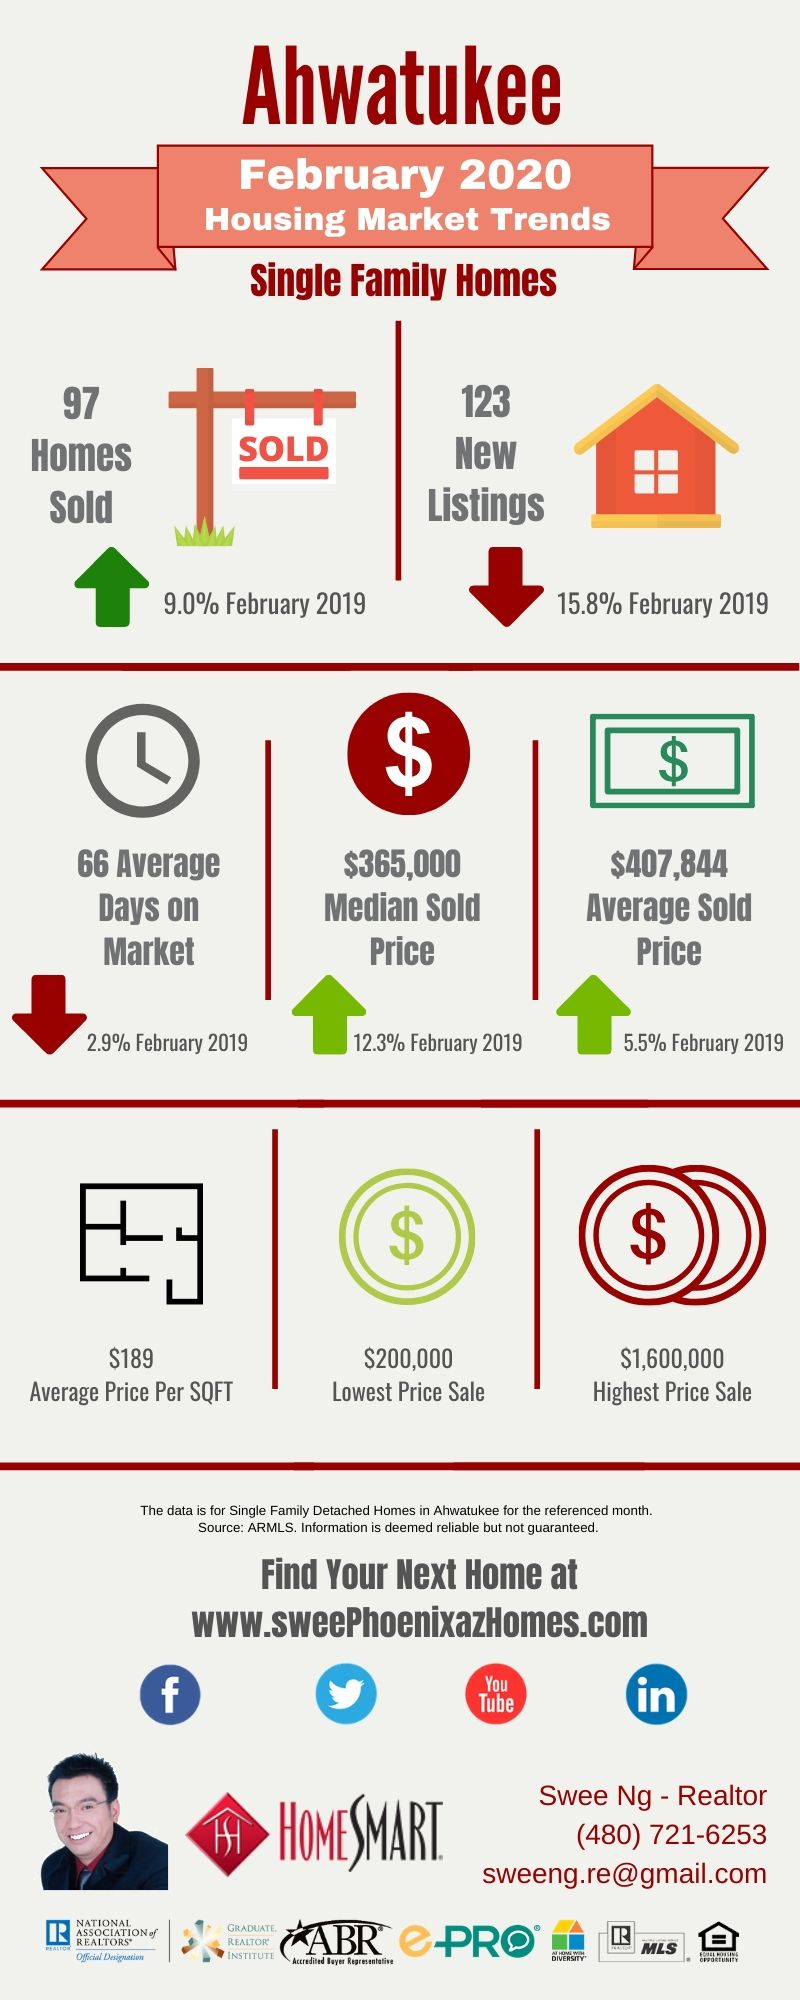 February 2020 Ahwatukee Housing Market Update, House Value, Real Estate and Statistic by Swee Ng